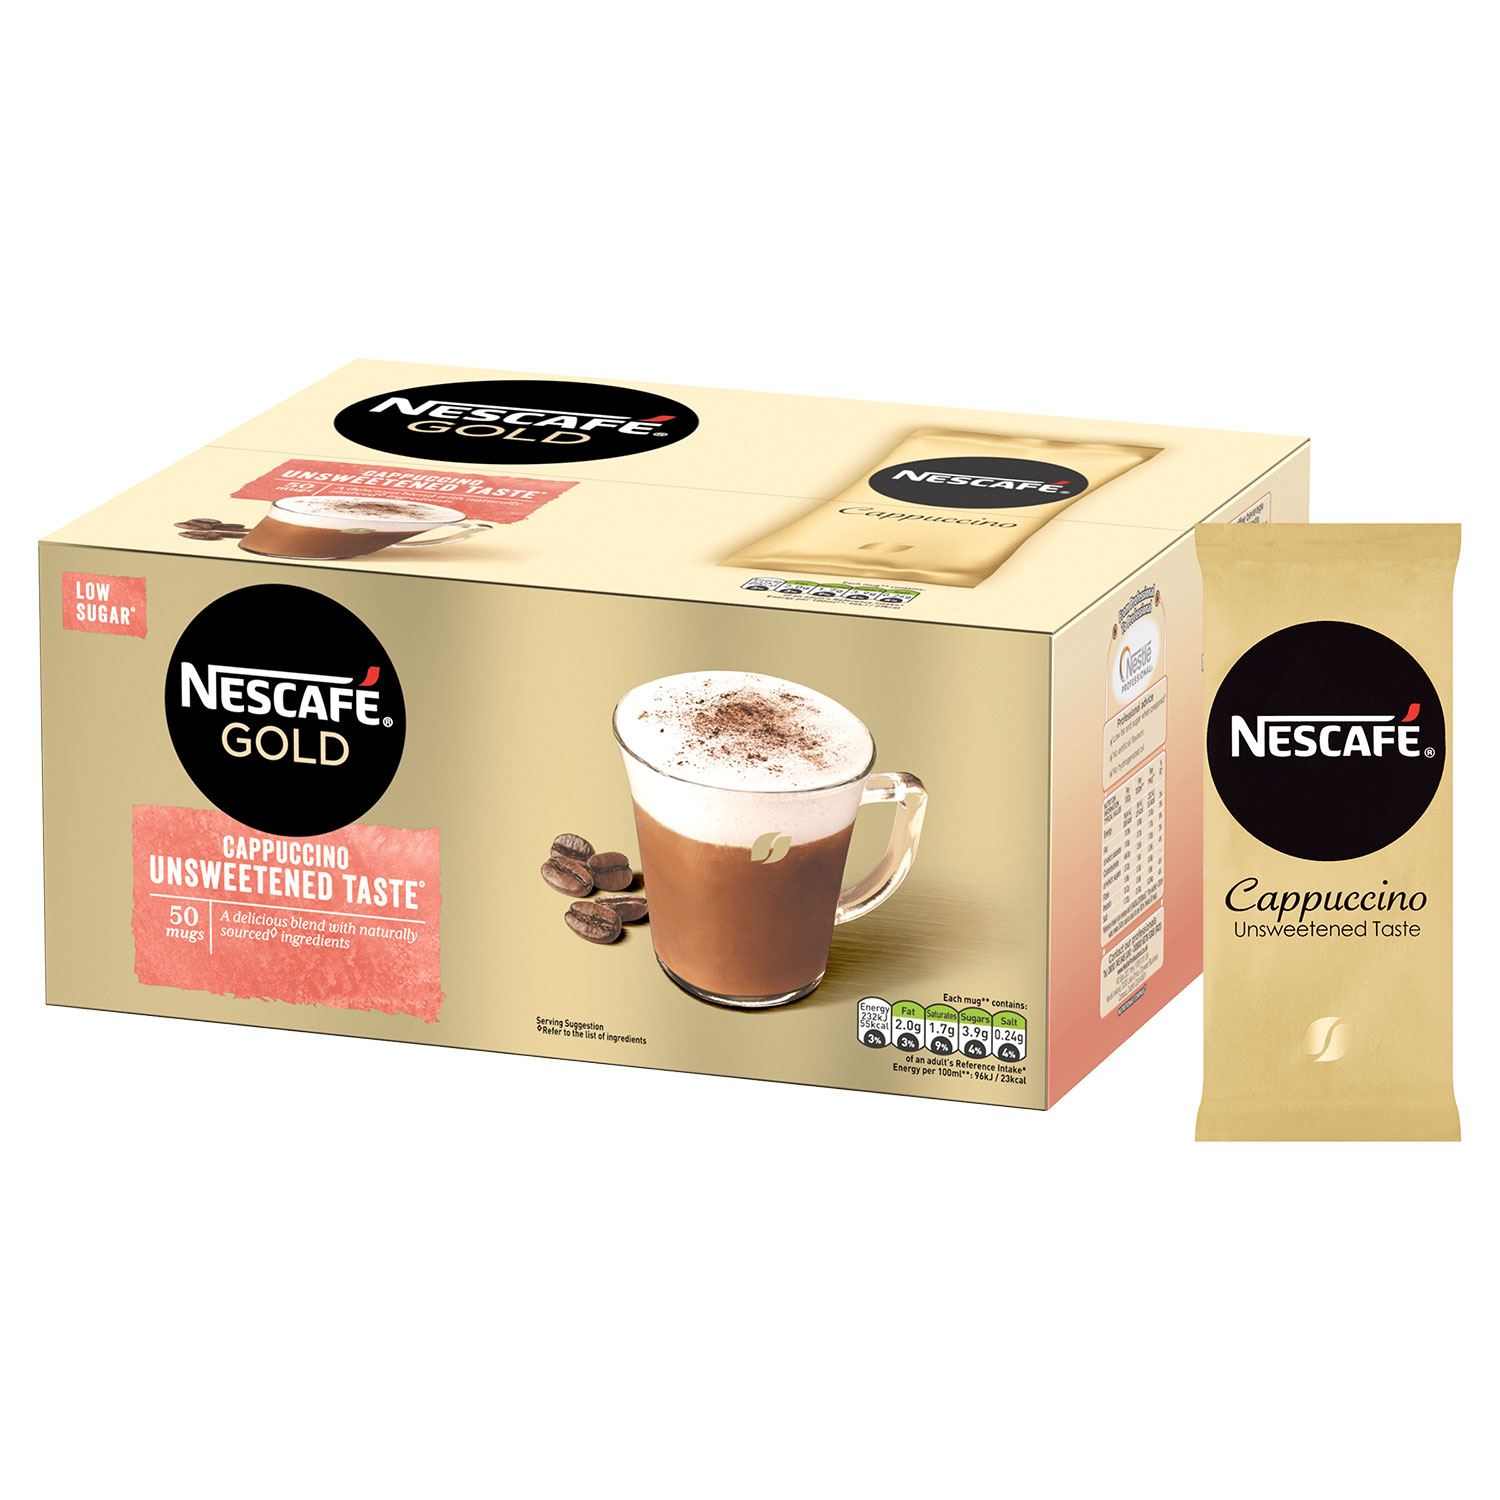 thumbnail 14 - Nescafe Gold Instant Coffee Sachets 40 Latte or 50 Unsweetened Cappuccino